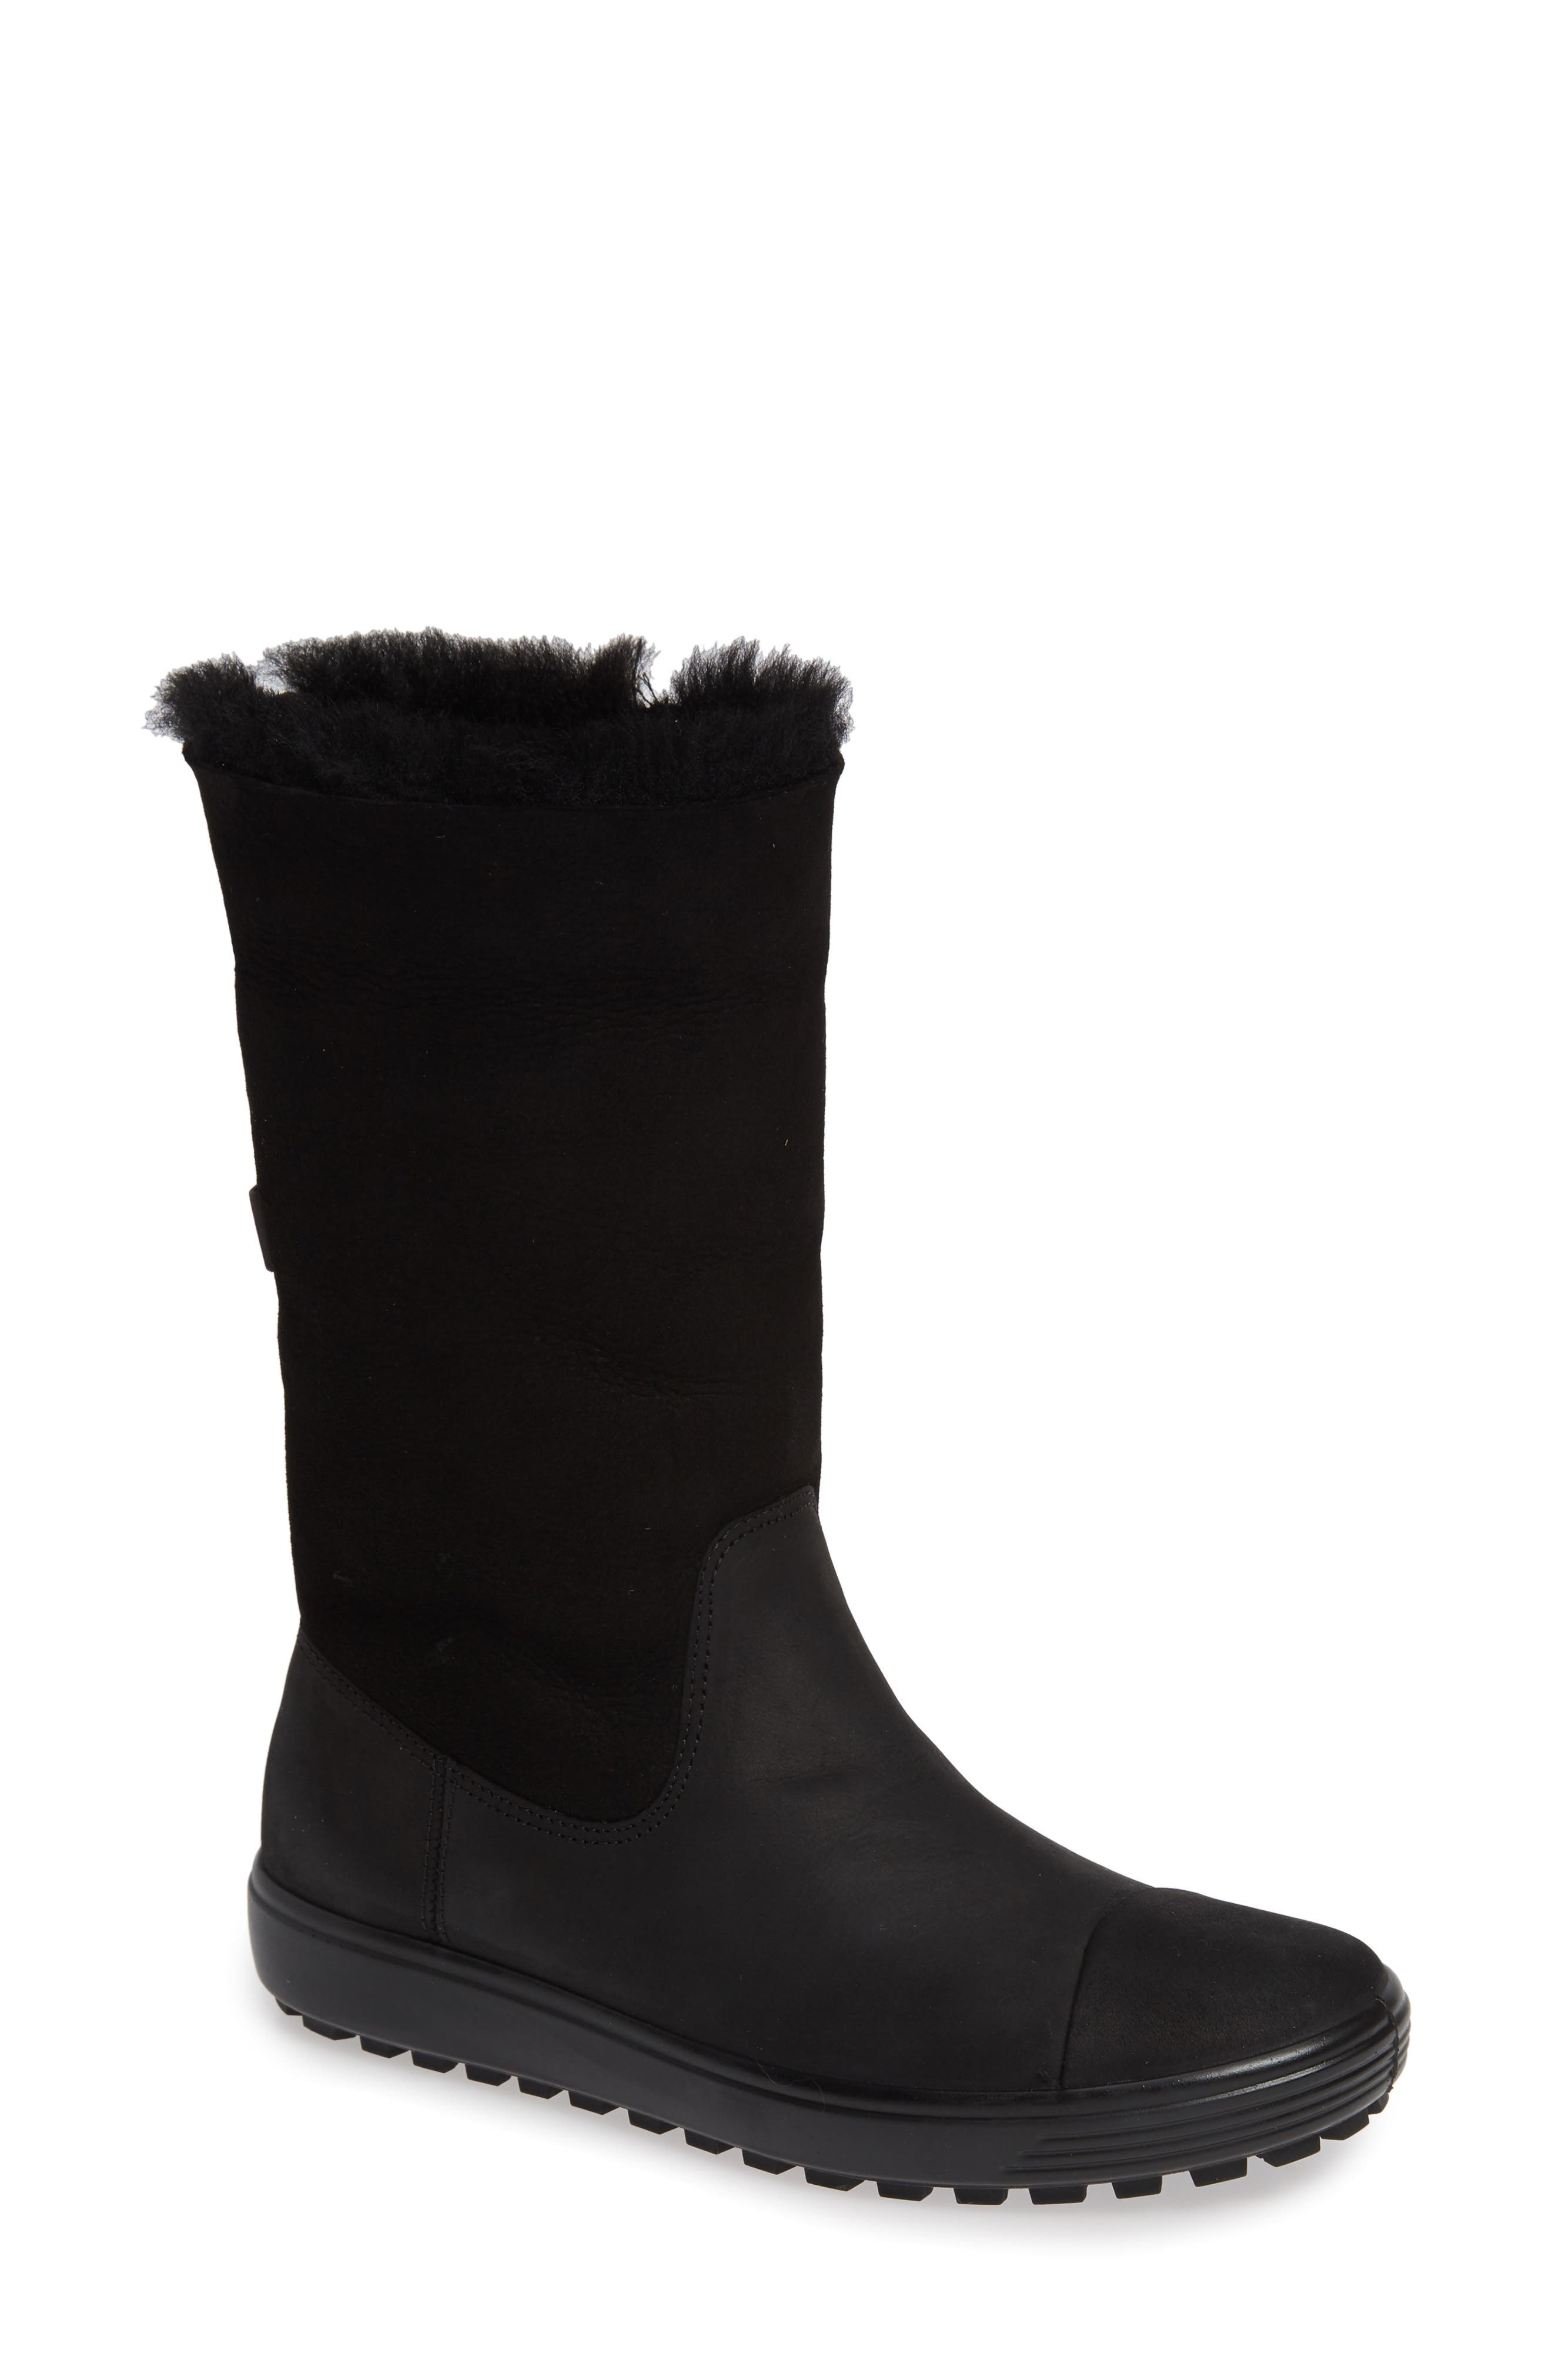 Soft 7 Tred Waterproof Genuine Shearling Lined Boot,                             Alternate thumbnail 2, color,                             BLACK NUBUCK LEATHER